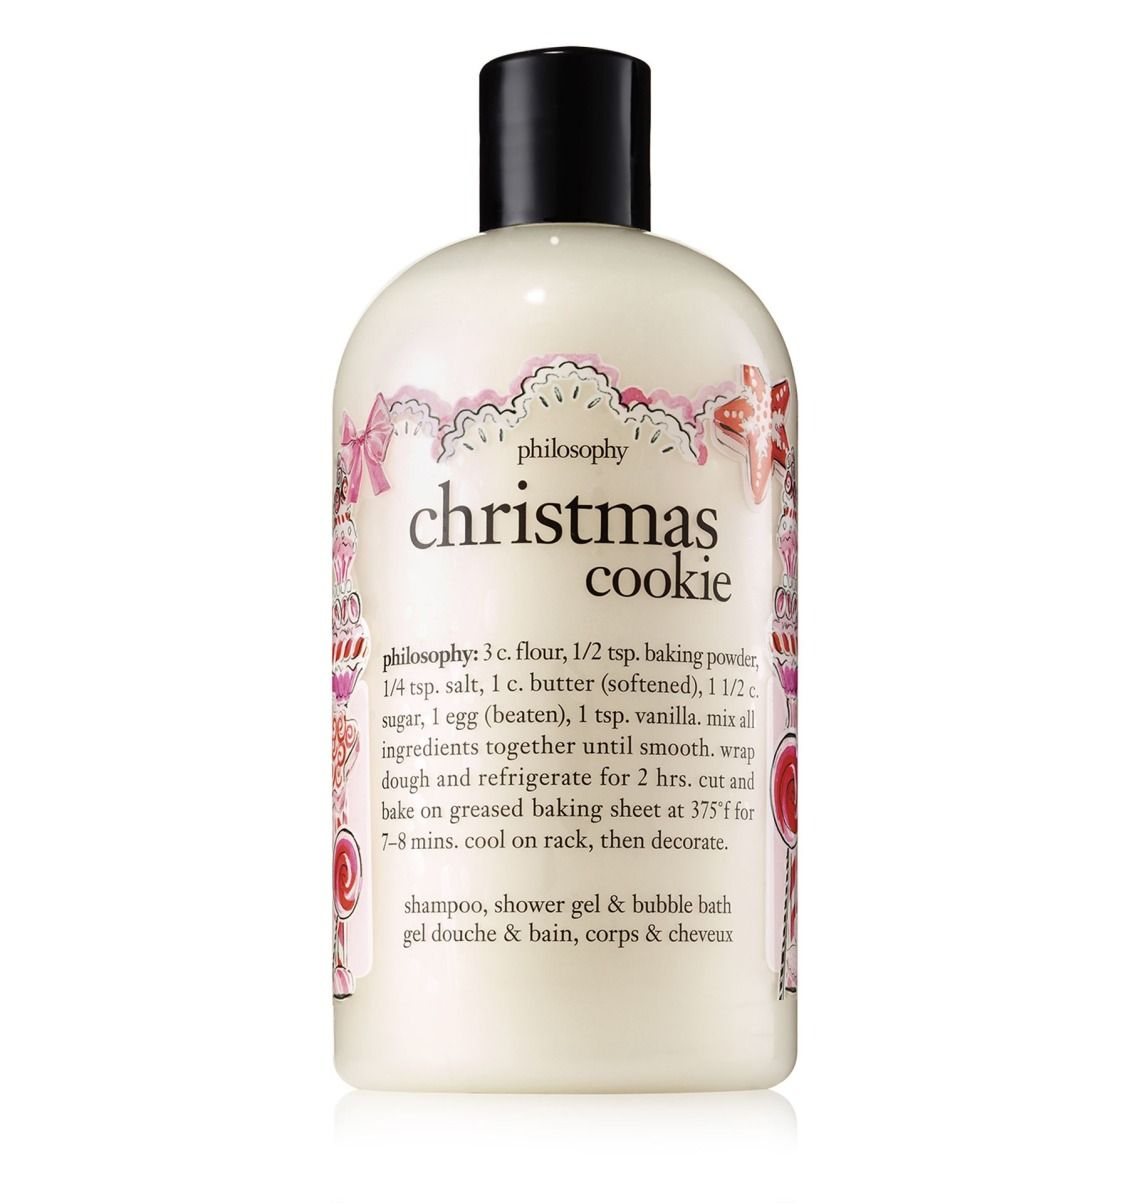 christmas cookie capture the essence of christmas morning with christmas cookie shampoo shower gel bubble bath